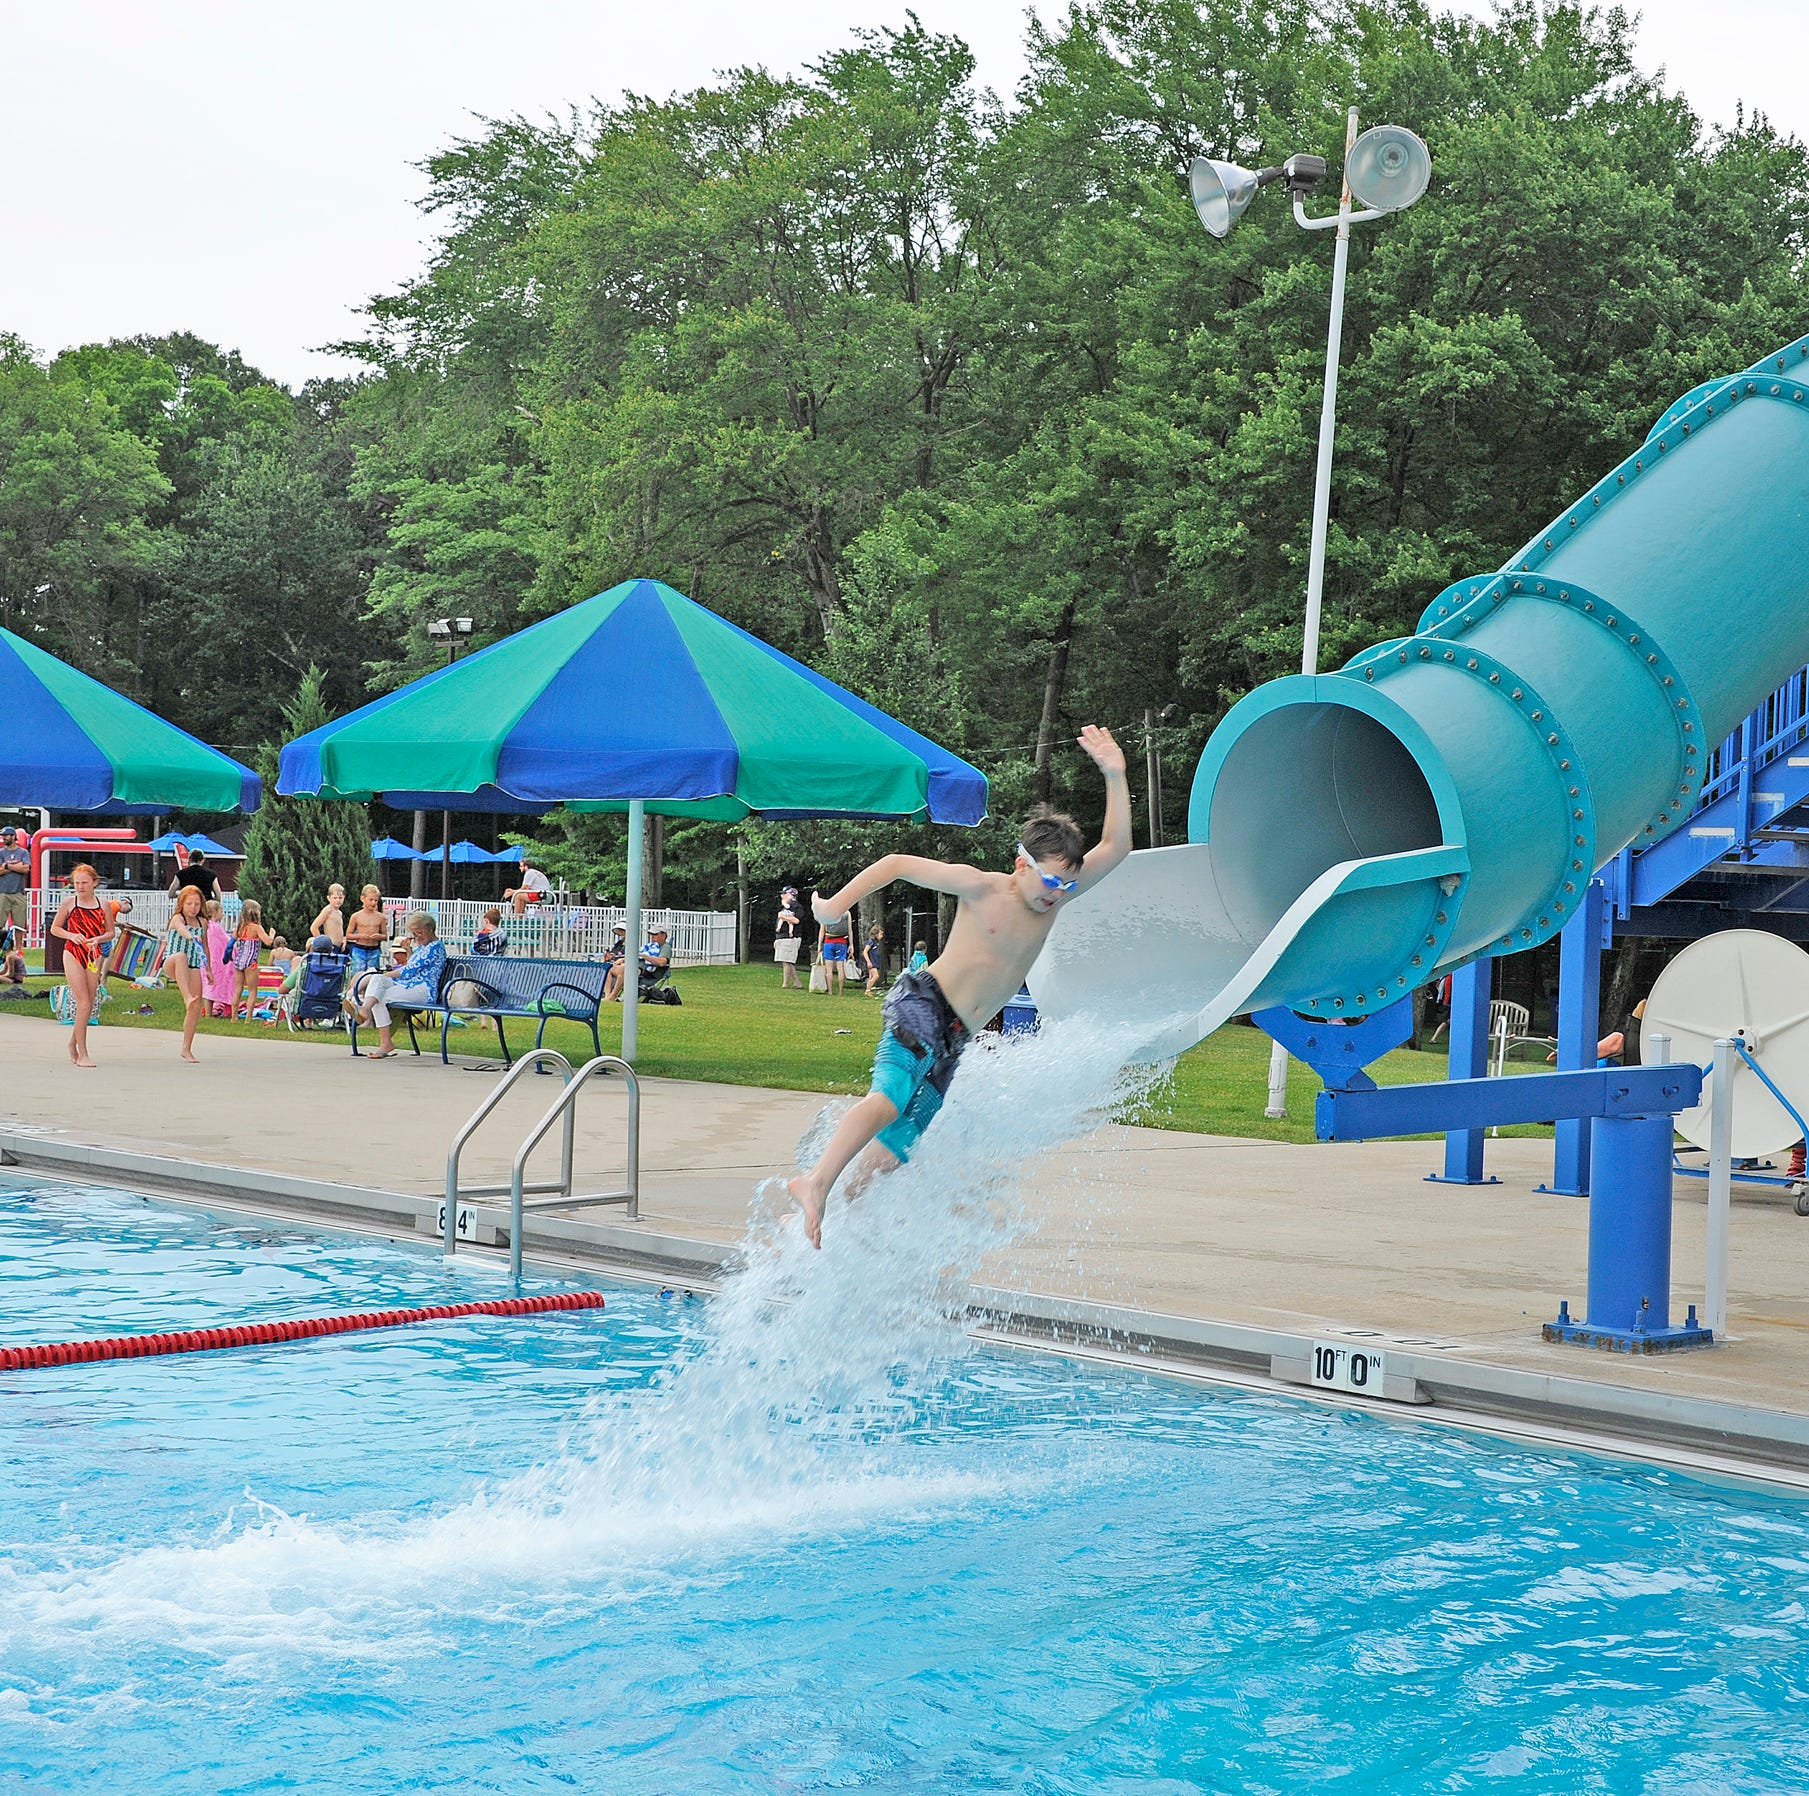 Should Glen Rock open its pool membership to non-residents? Petitioners say no